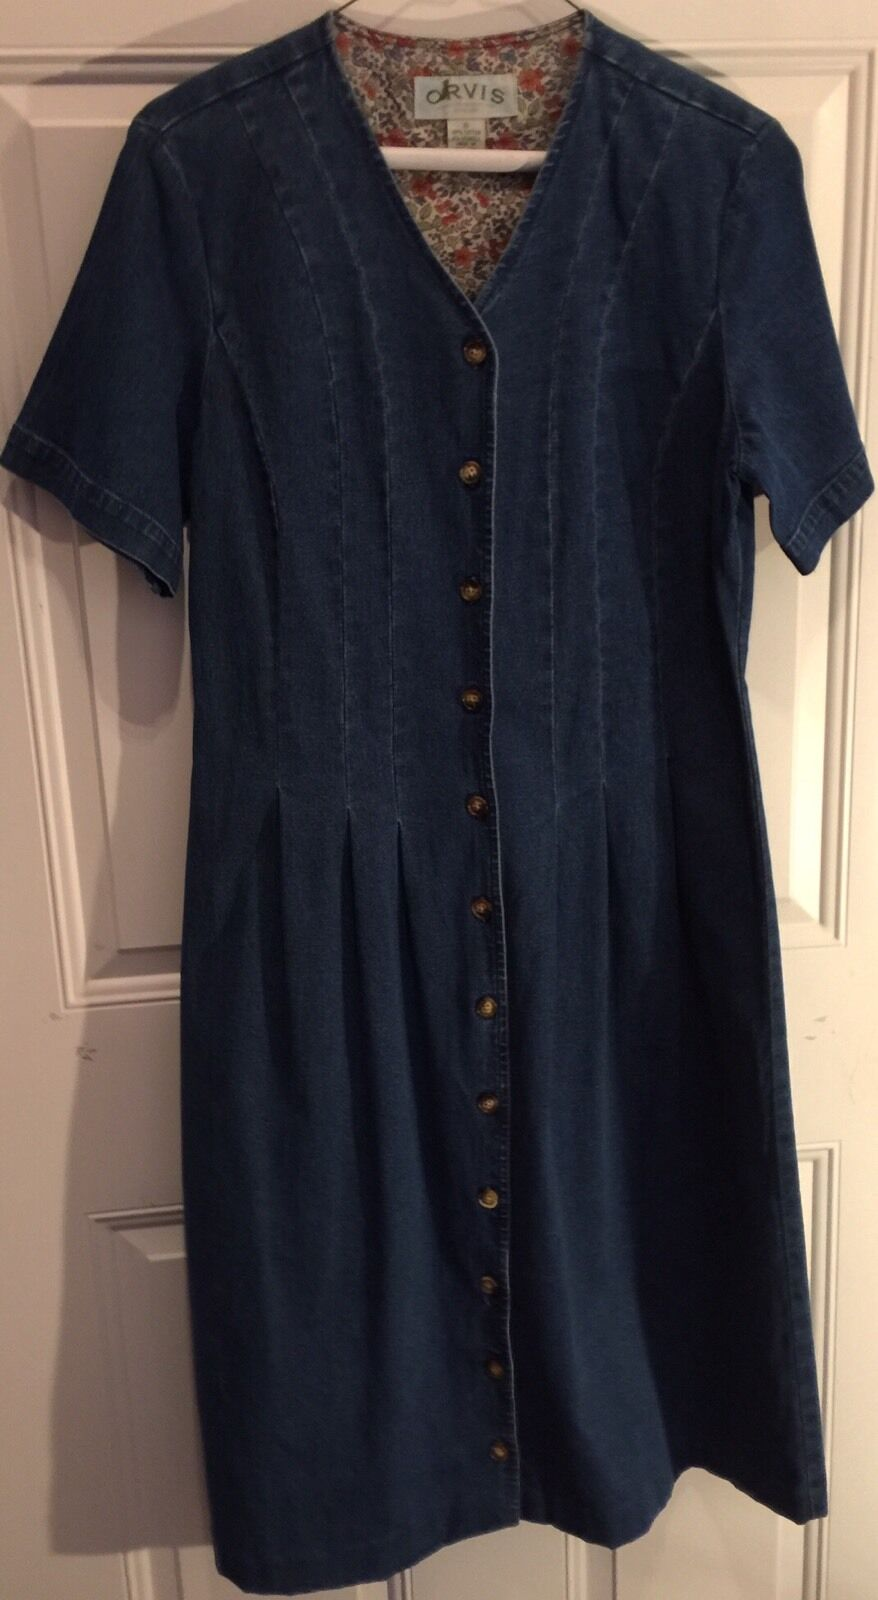 ORVIS Denim Jean Dress bluee Womens Size 8 Fitted Top Chest 36